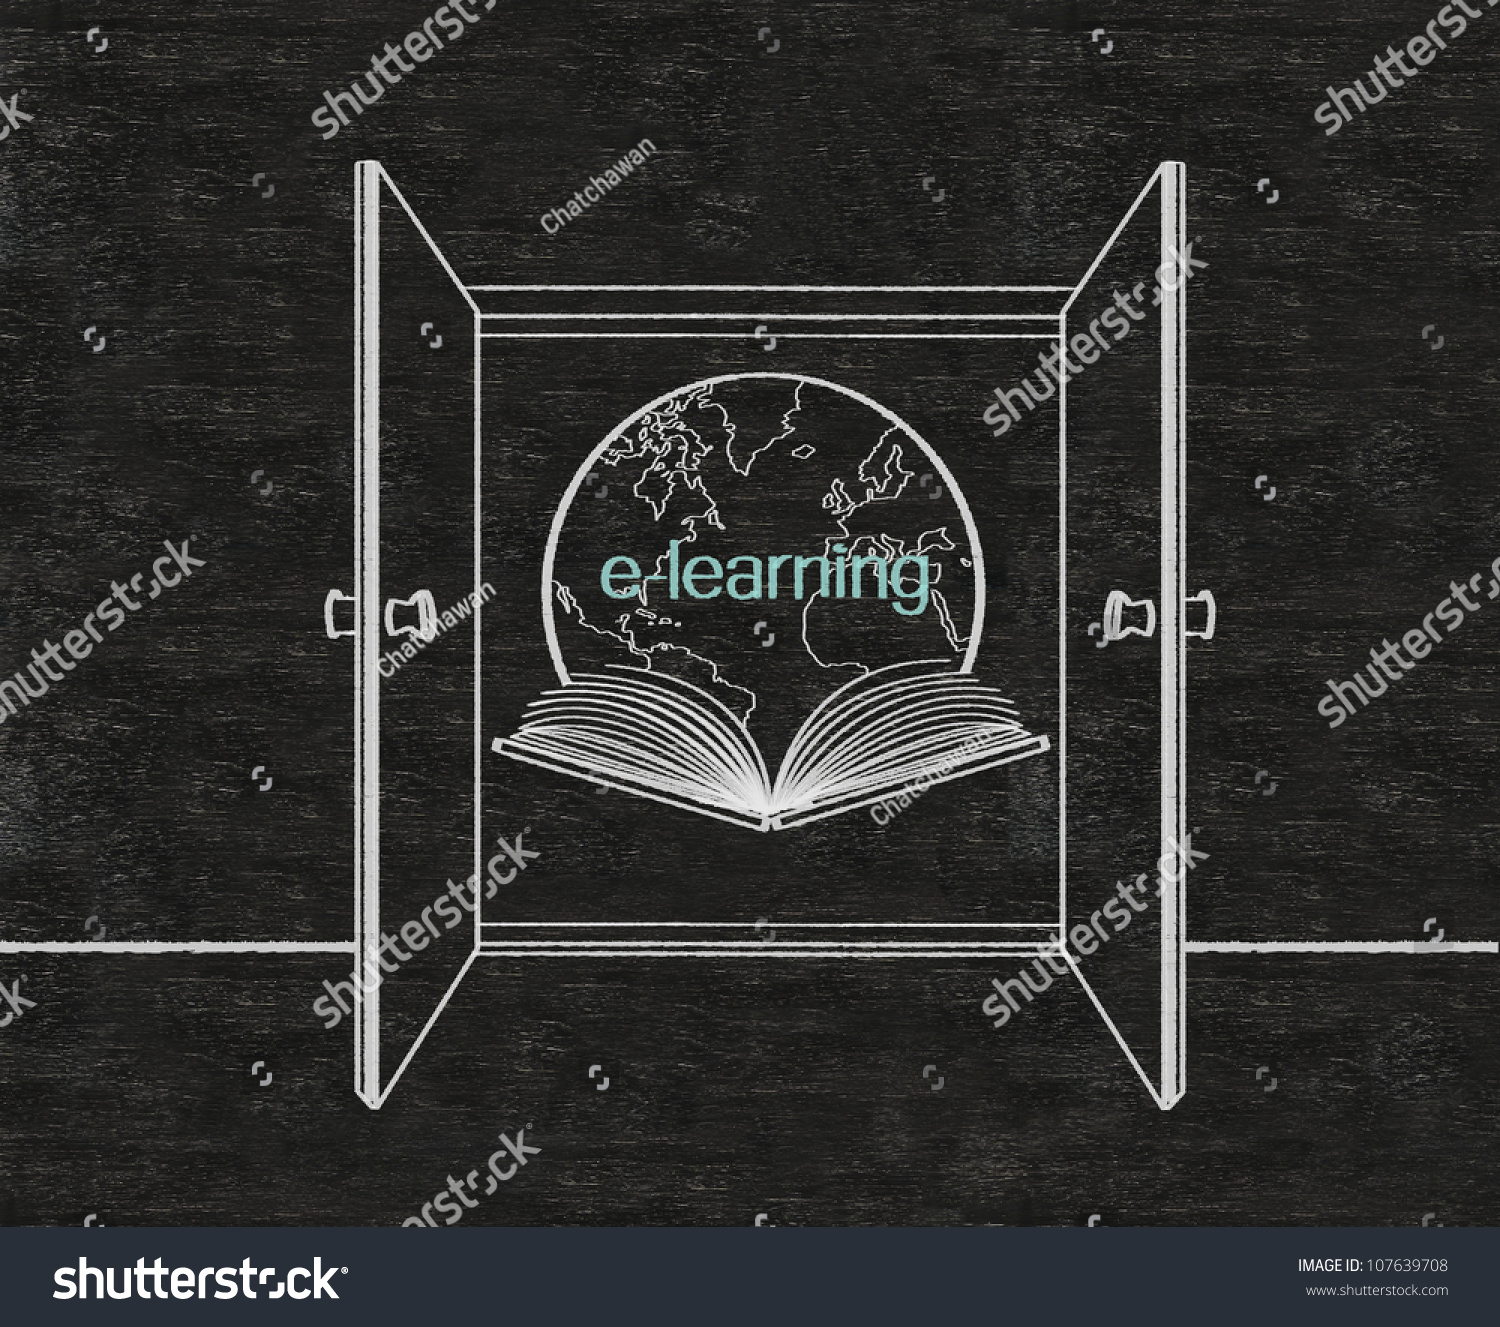 double doors open to e learning door frame written on blackboard background high resolution drawing l4 drawing